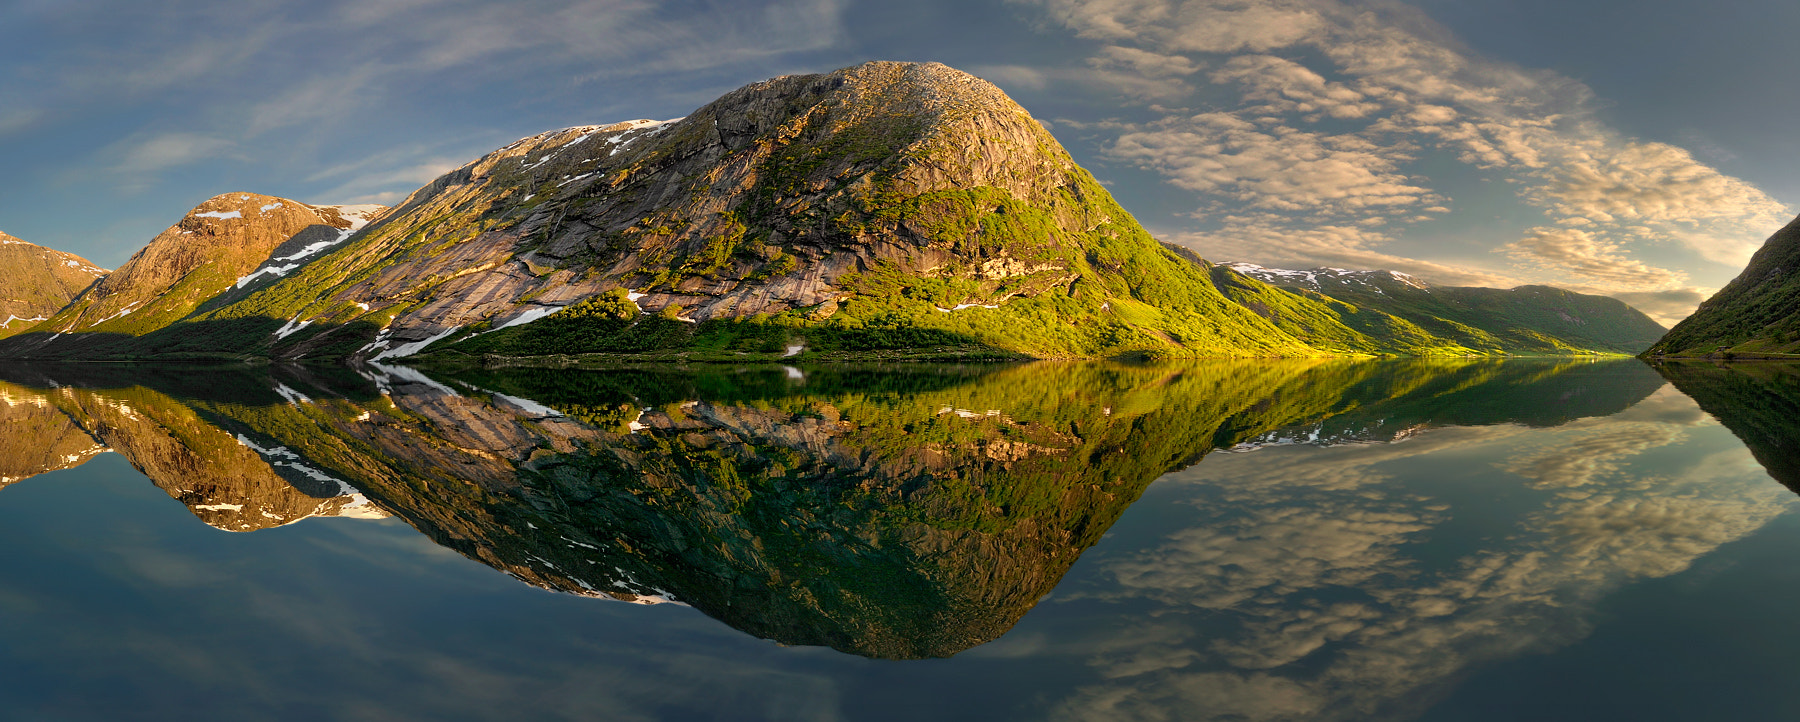 Photograph Two Faces of the Fjord... by Pawel Kucharski on 500px